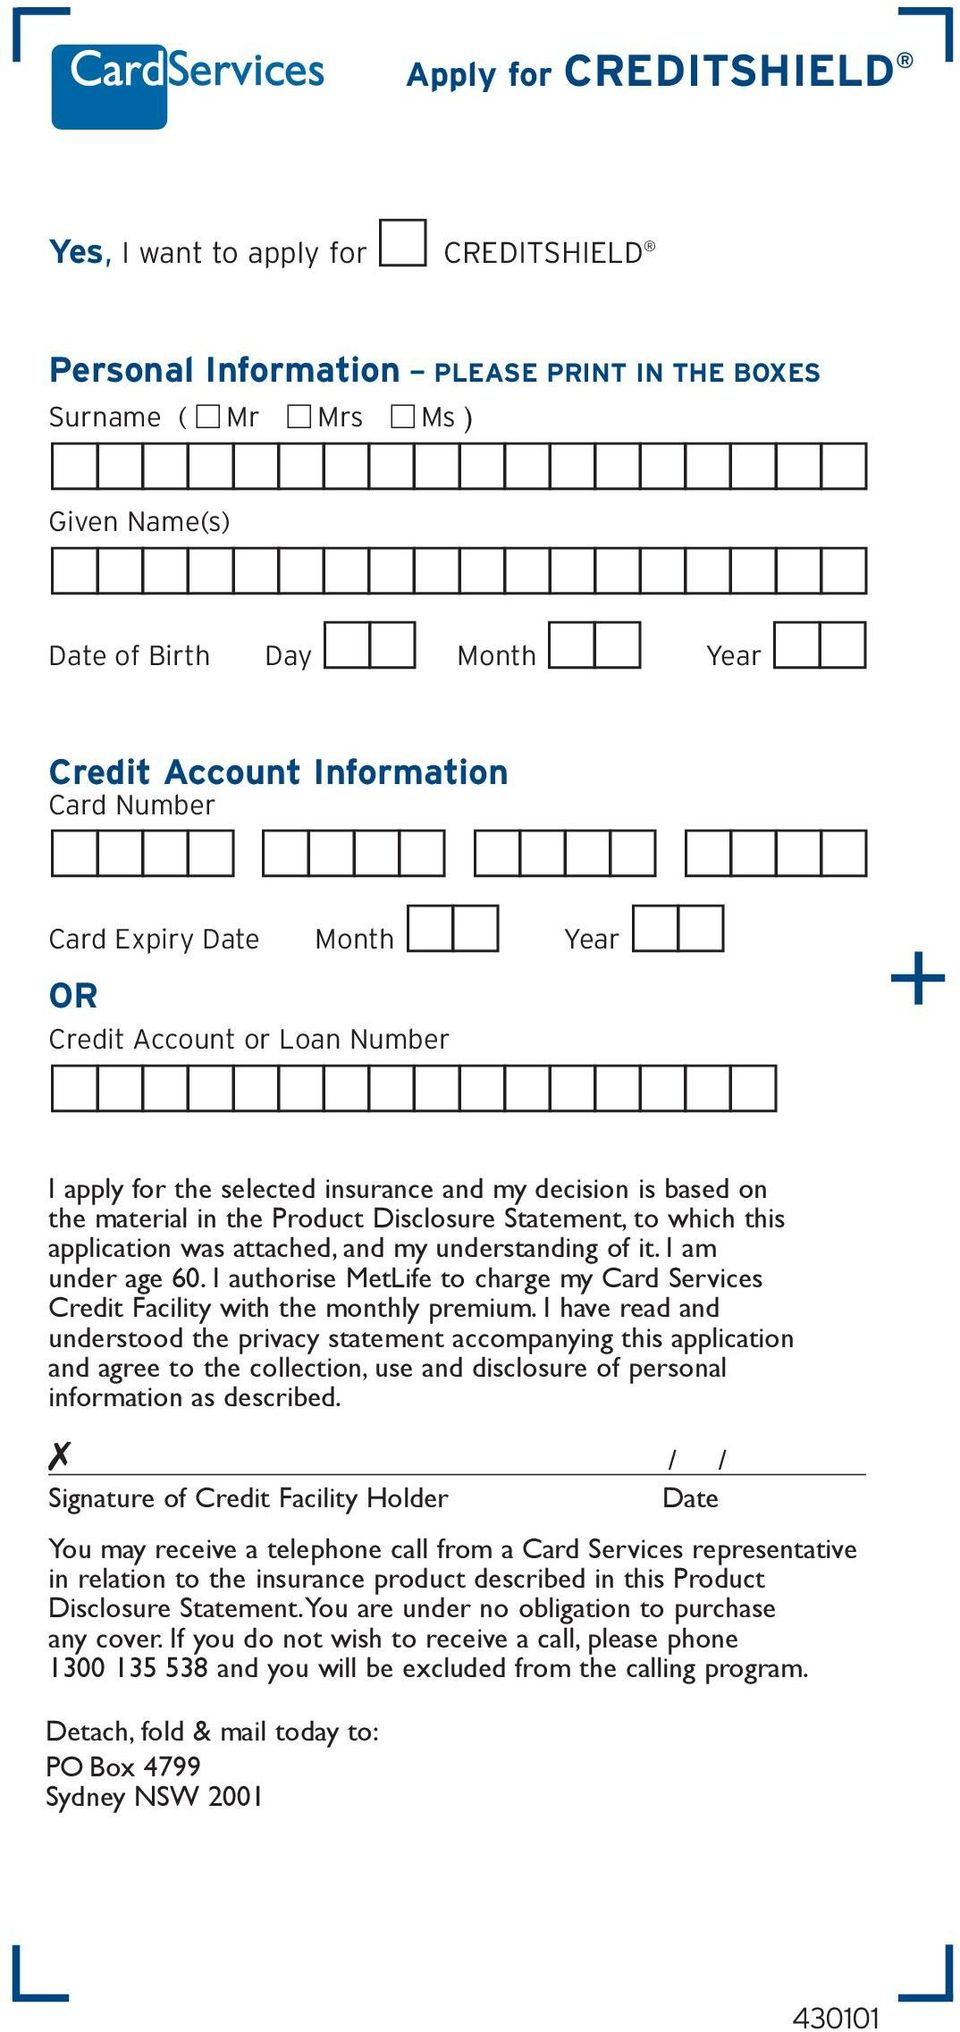 application was attached, and my understanding of it. I am under age 60. I authorise MetLife to charge my Card Services Credit Facility with the monthly premium.